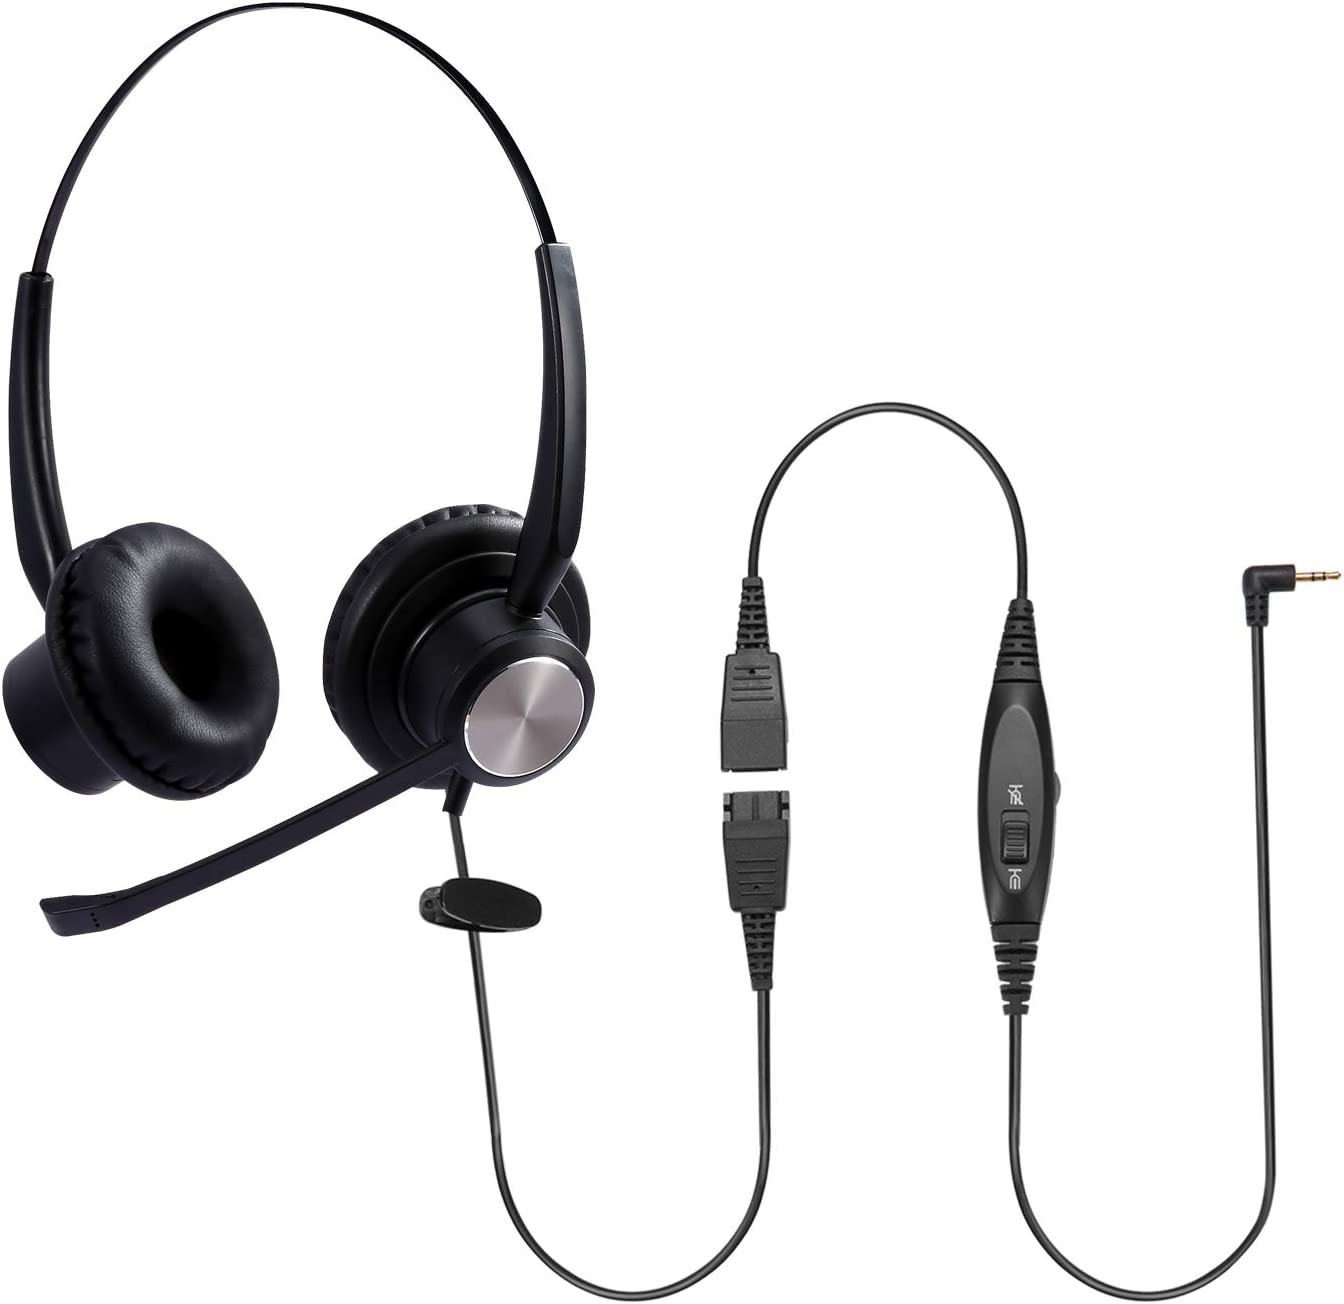 Sinseng Office Headsets with Mic Noise Cancelling for Landline Deskphone Cell Phone PC Laptop, Corded Headset with Jack 2.5mm for AT&T ML17929 Panasonic Vtech RCA Uniden Cisco SPA Grandstream Polycom